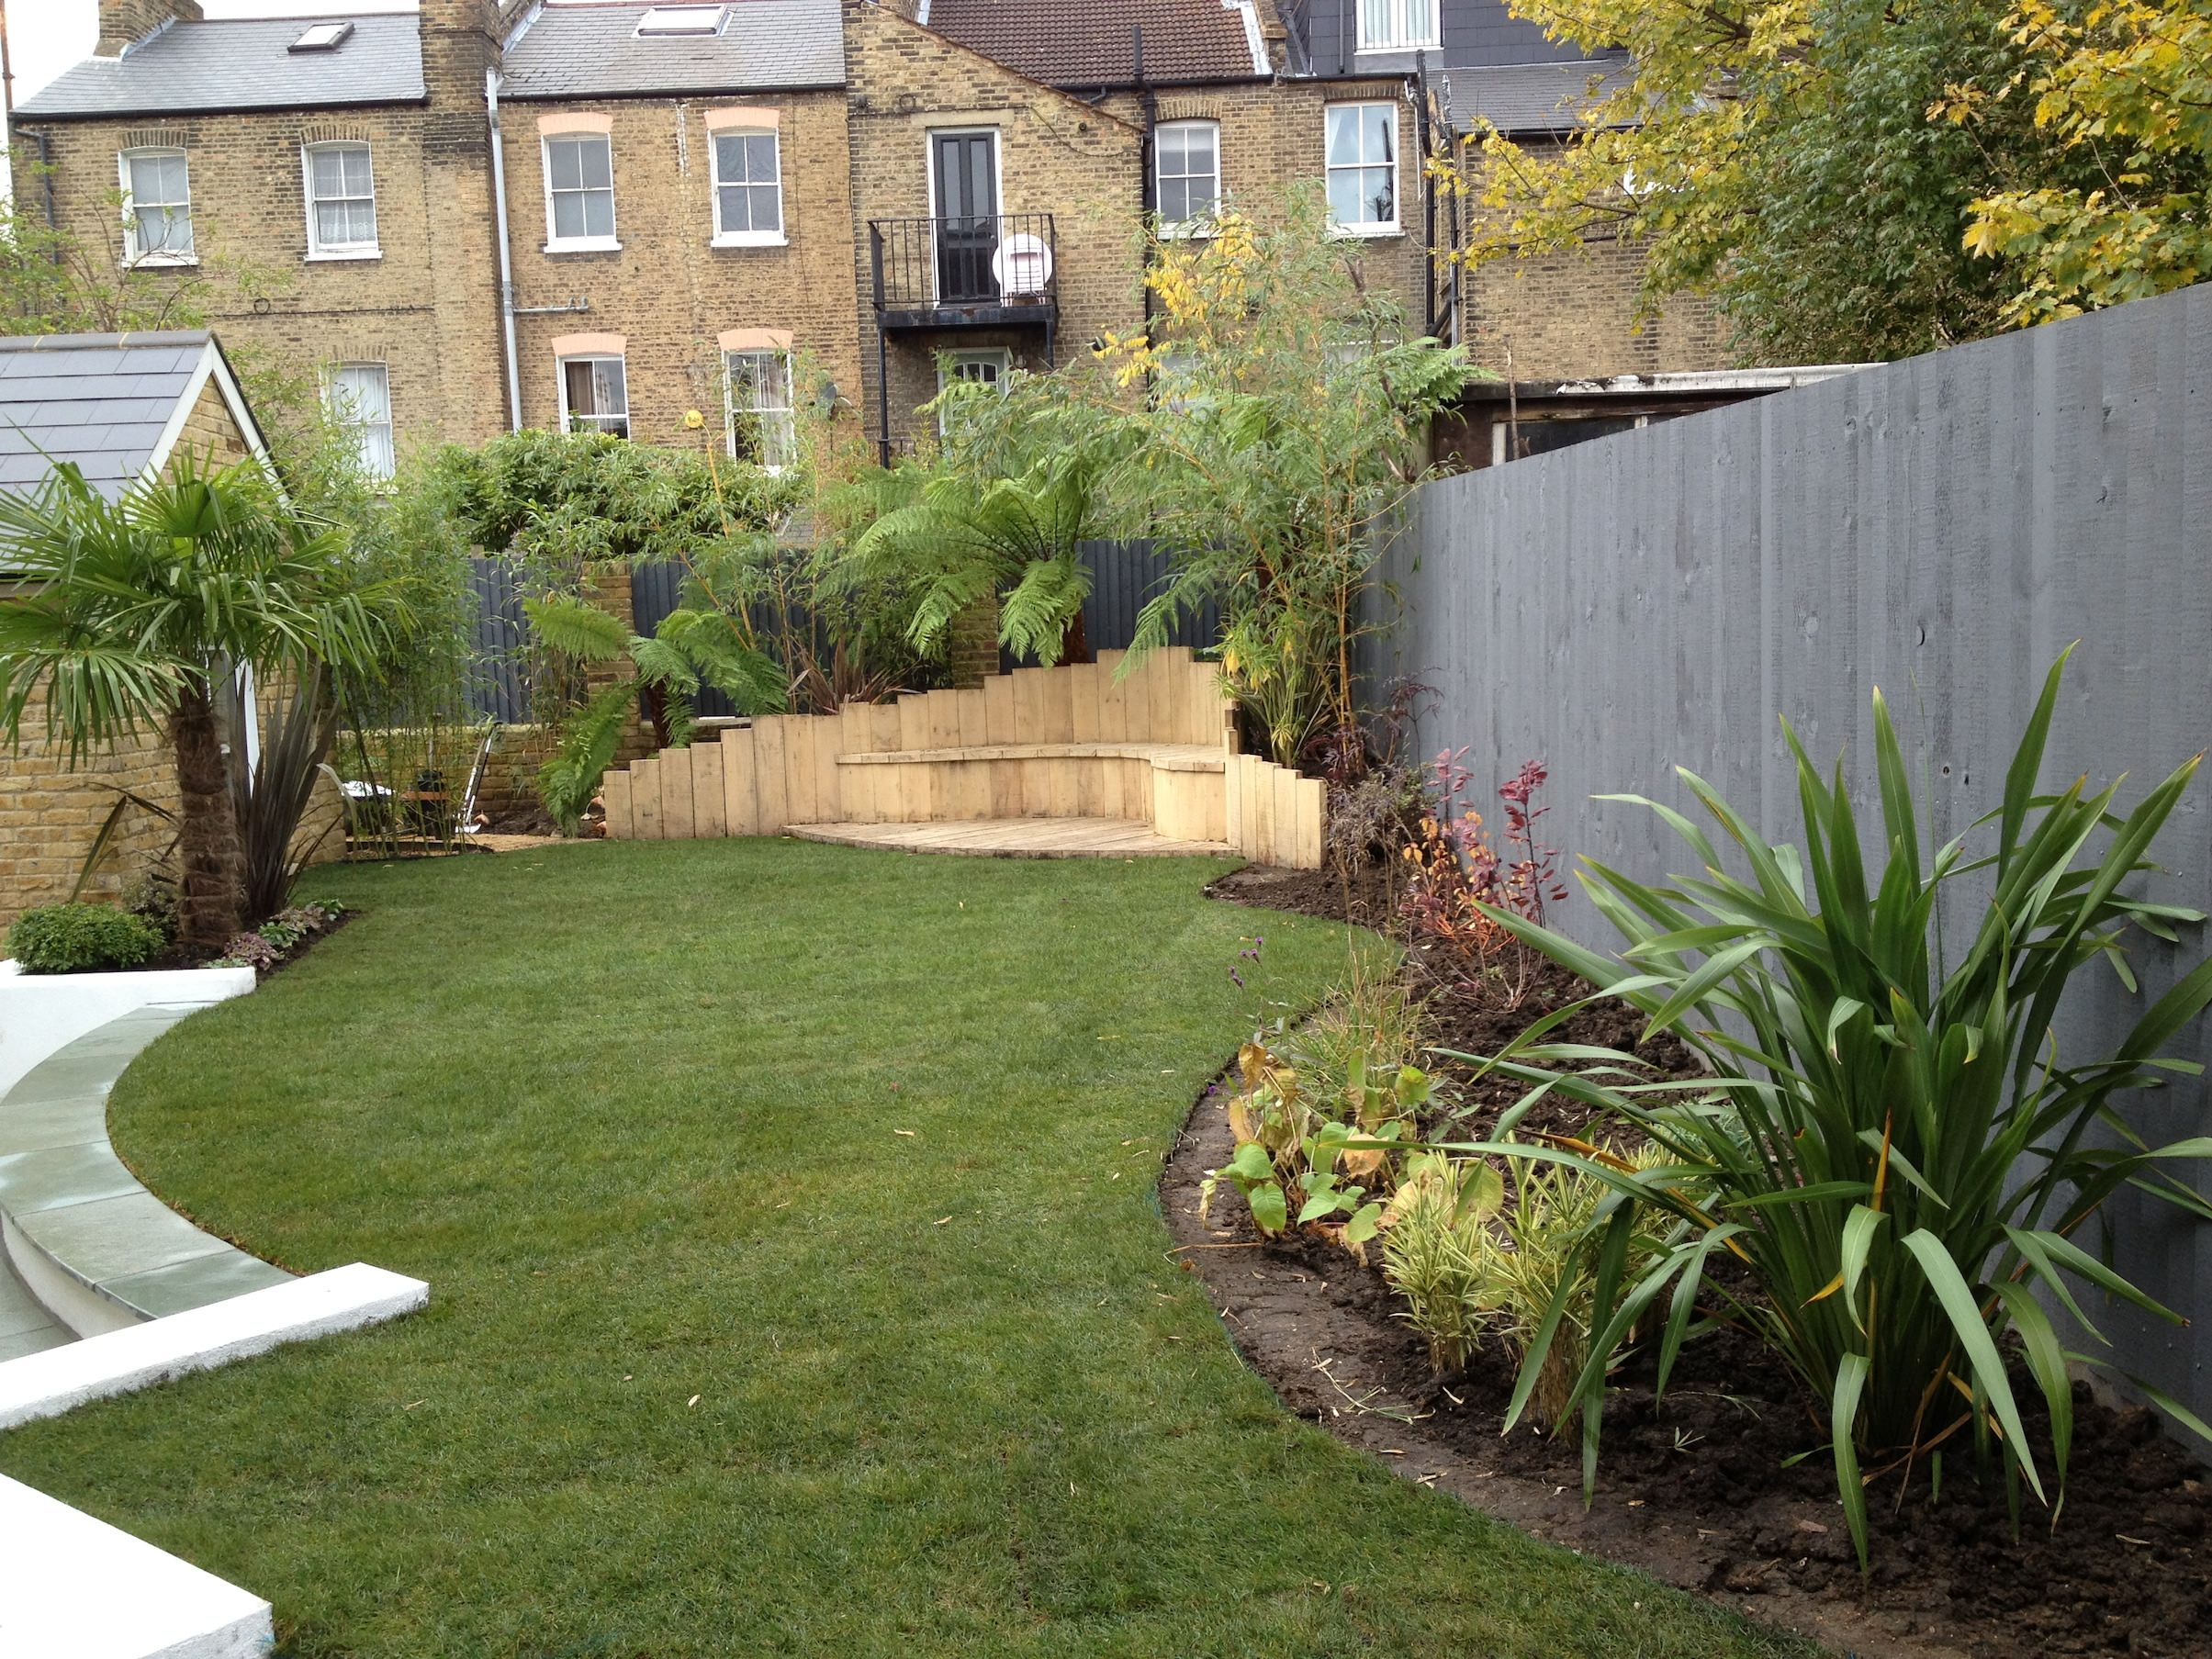 Low maintenance garden designs garden club london for Small low maintenance garden designs